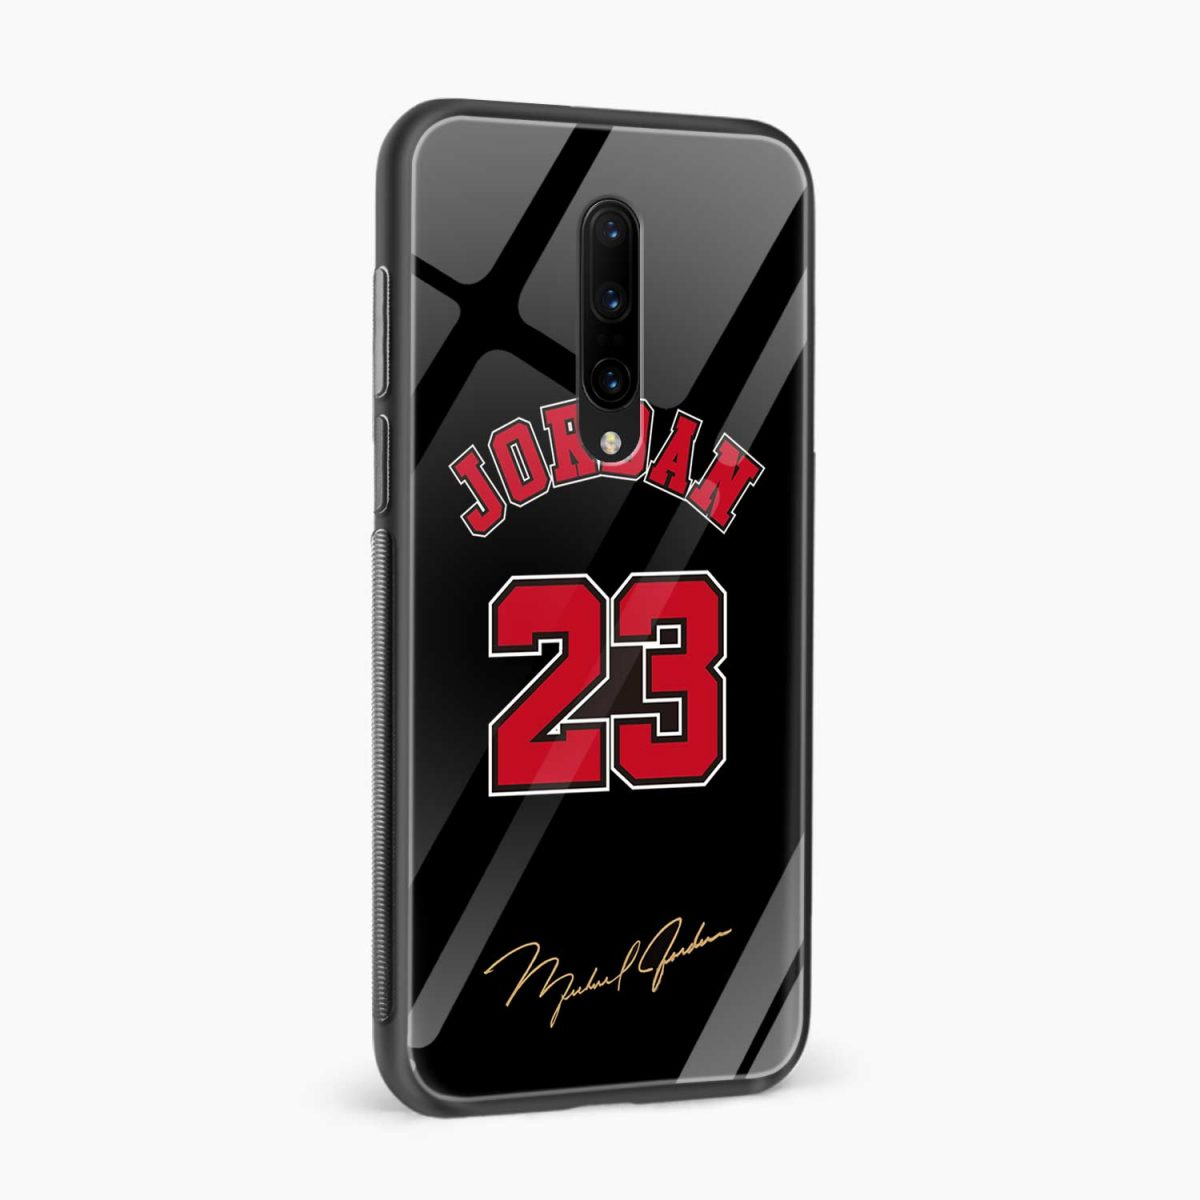 jordan side view oneplus 7 pro back cover